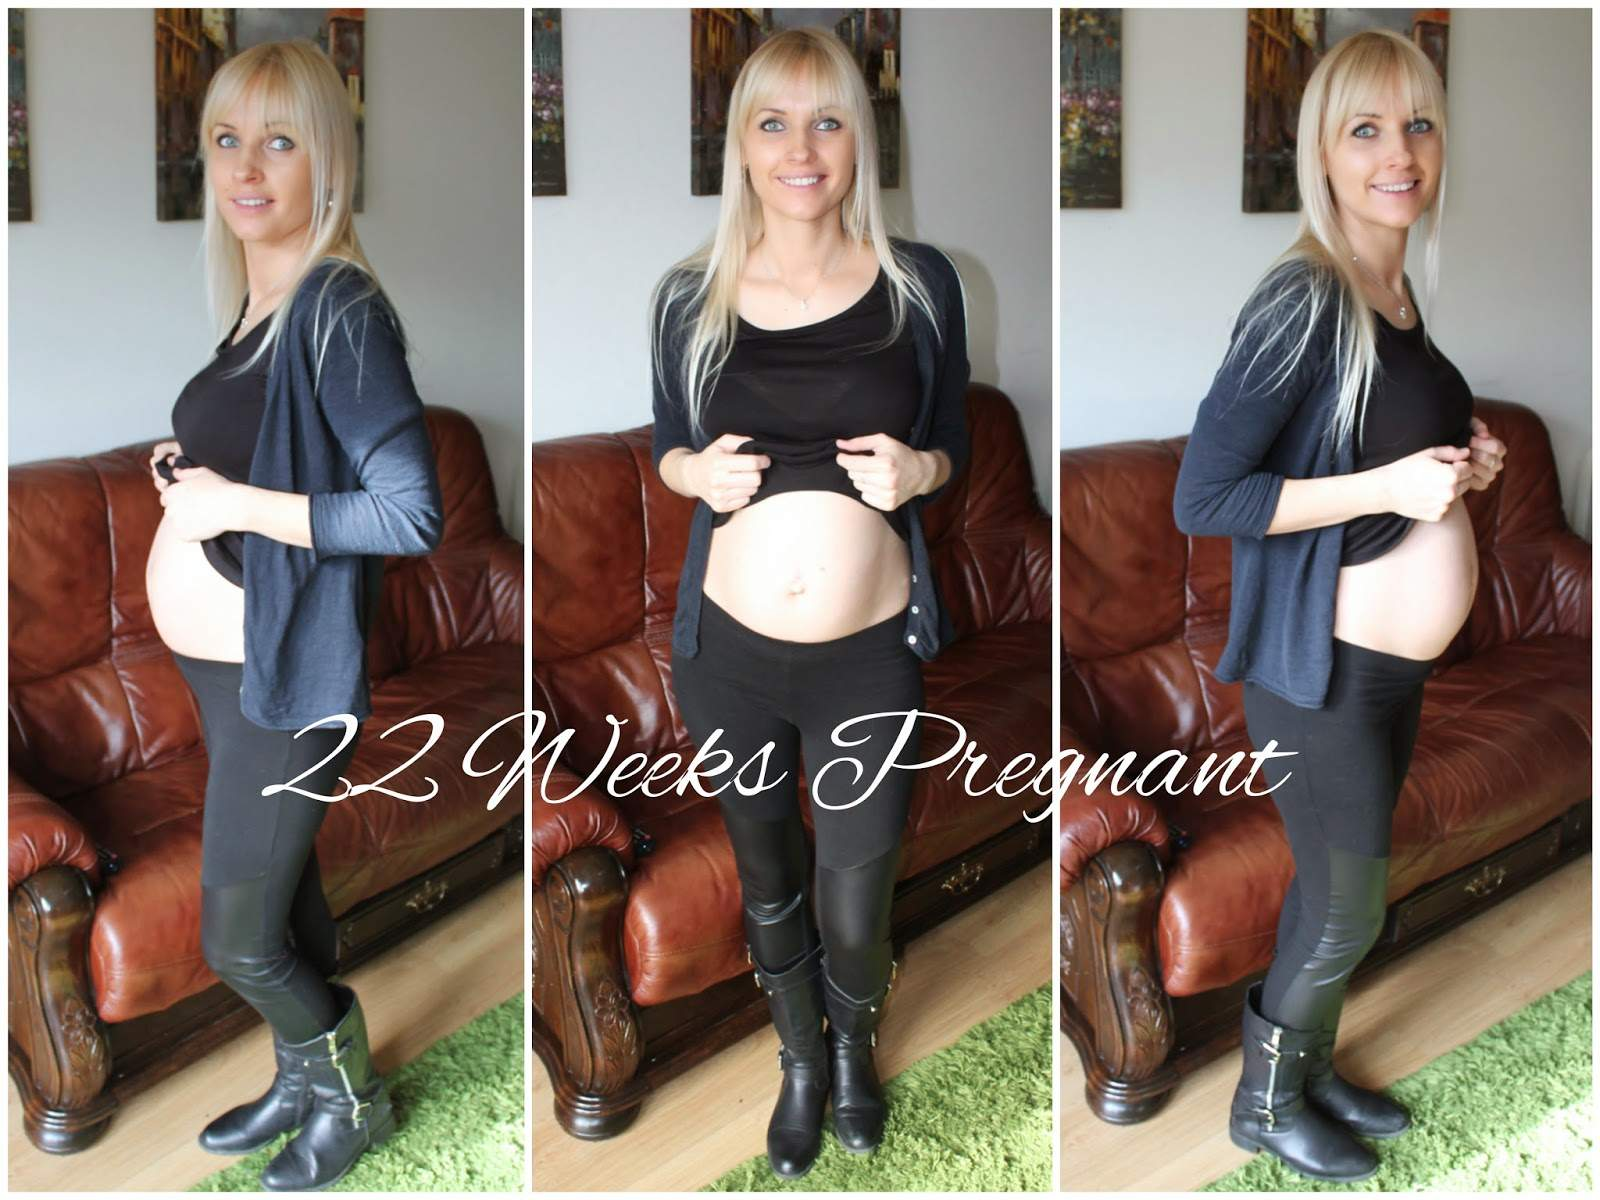 22 weeks pregnant tummy, belly